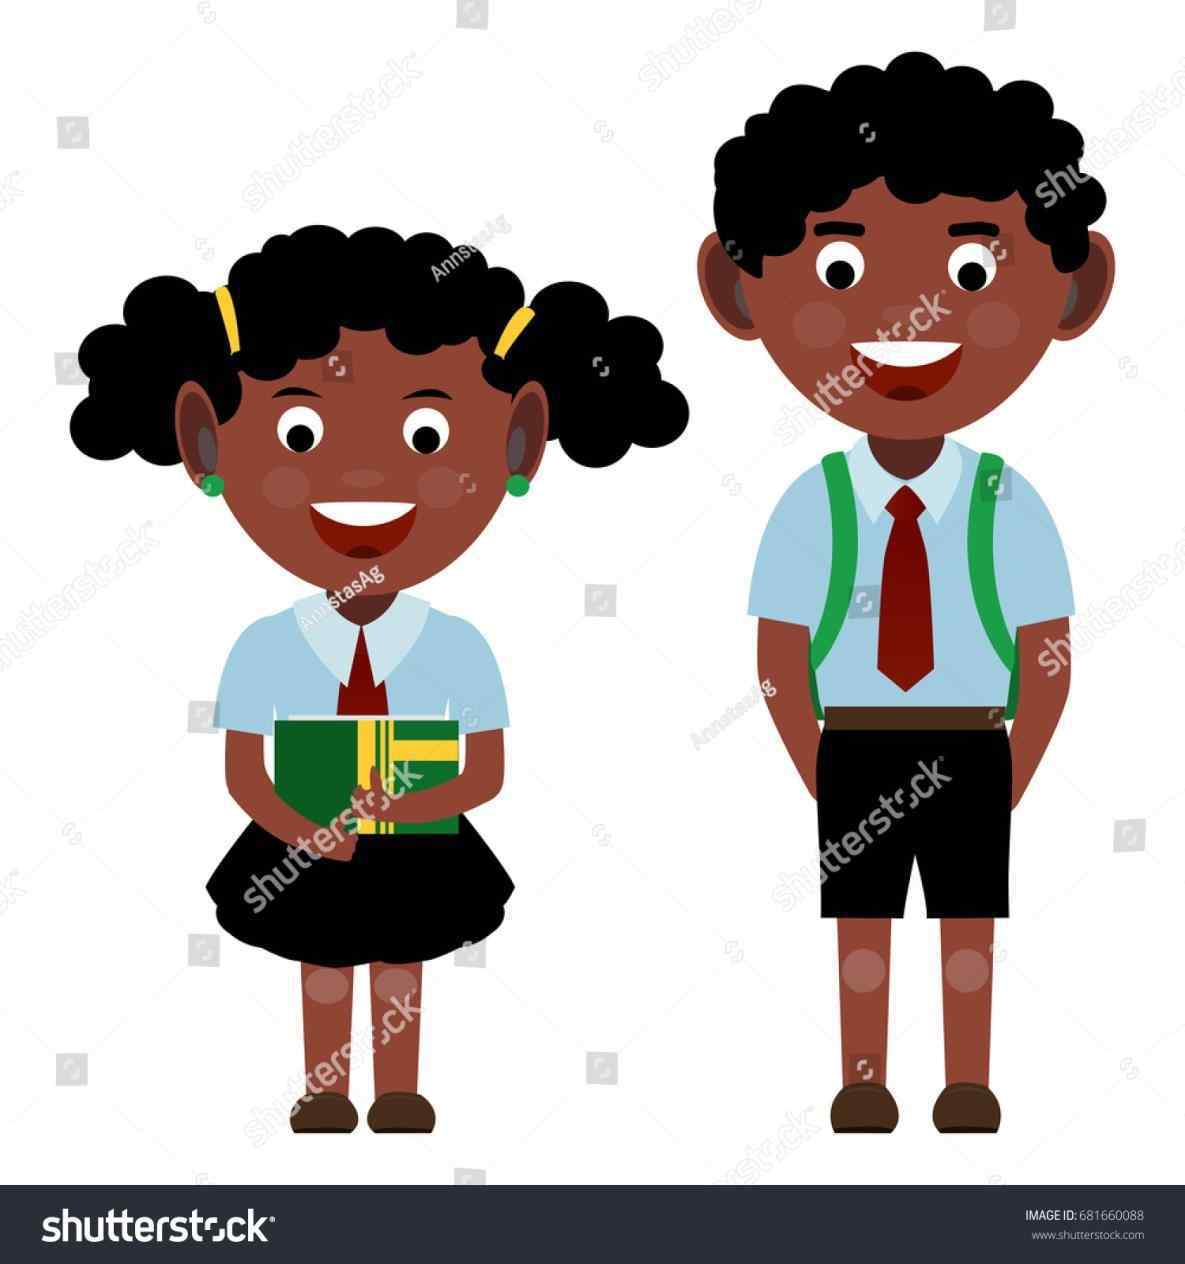 1185x1264 Get Get Dressed For School Clipart Dressed For School Clipart